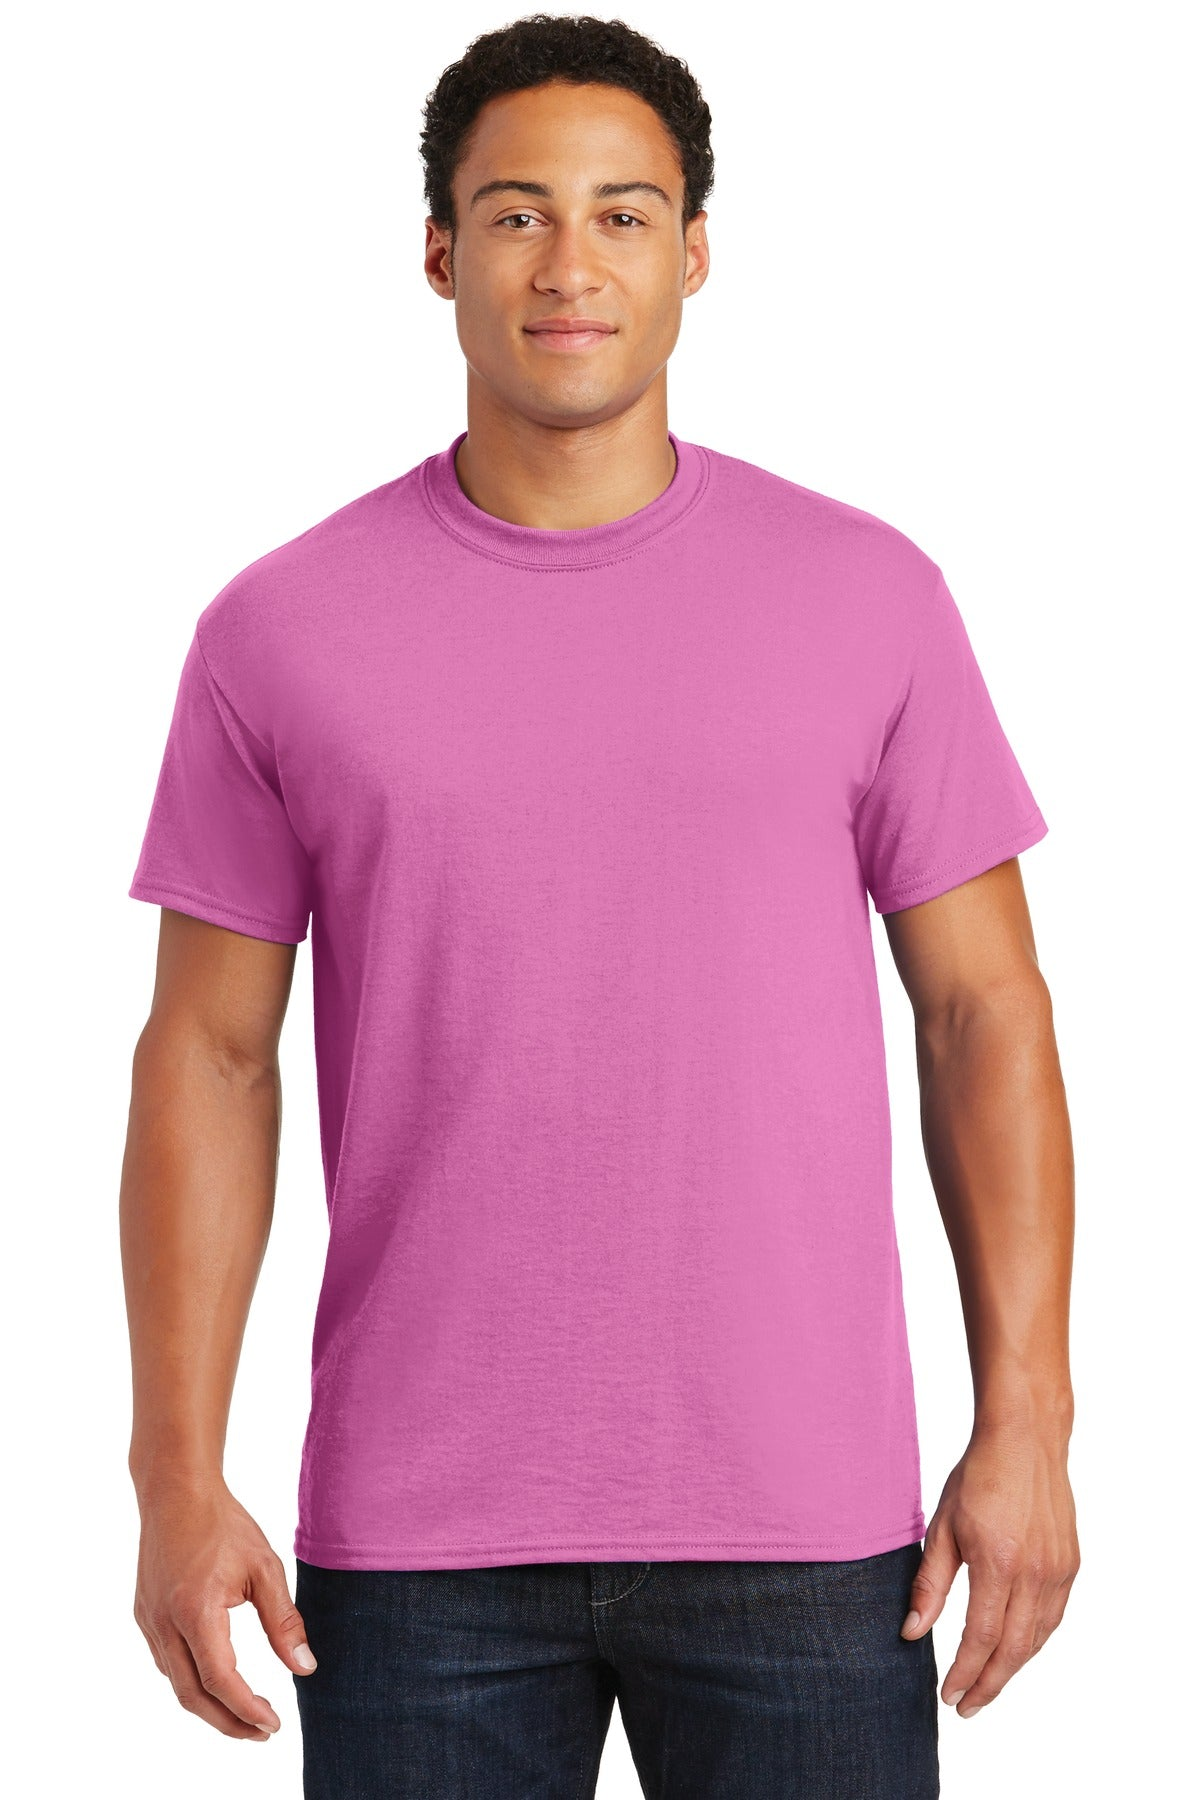 Azalea Gildan DryBlend 50 Cotton/50 Poly T-Shirt.